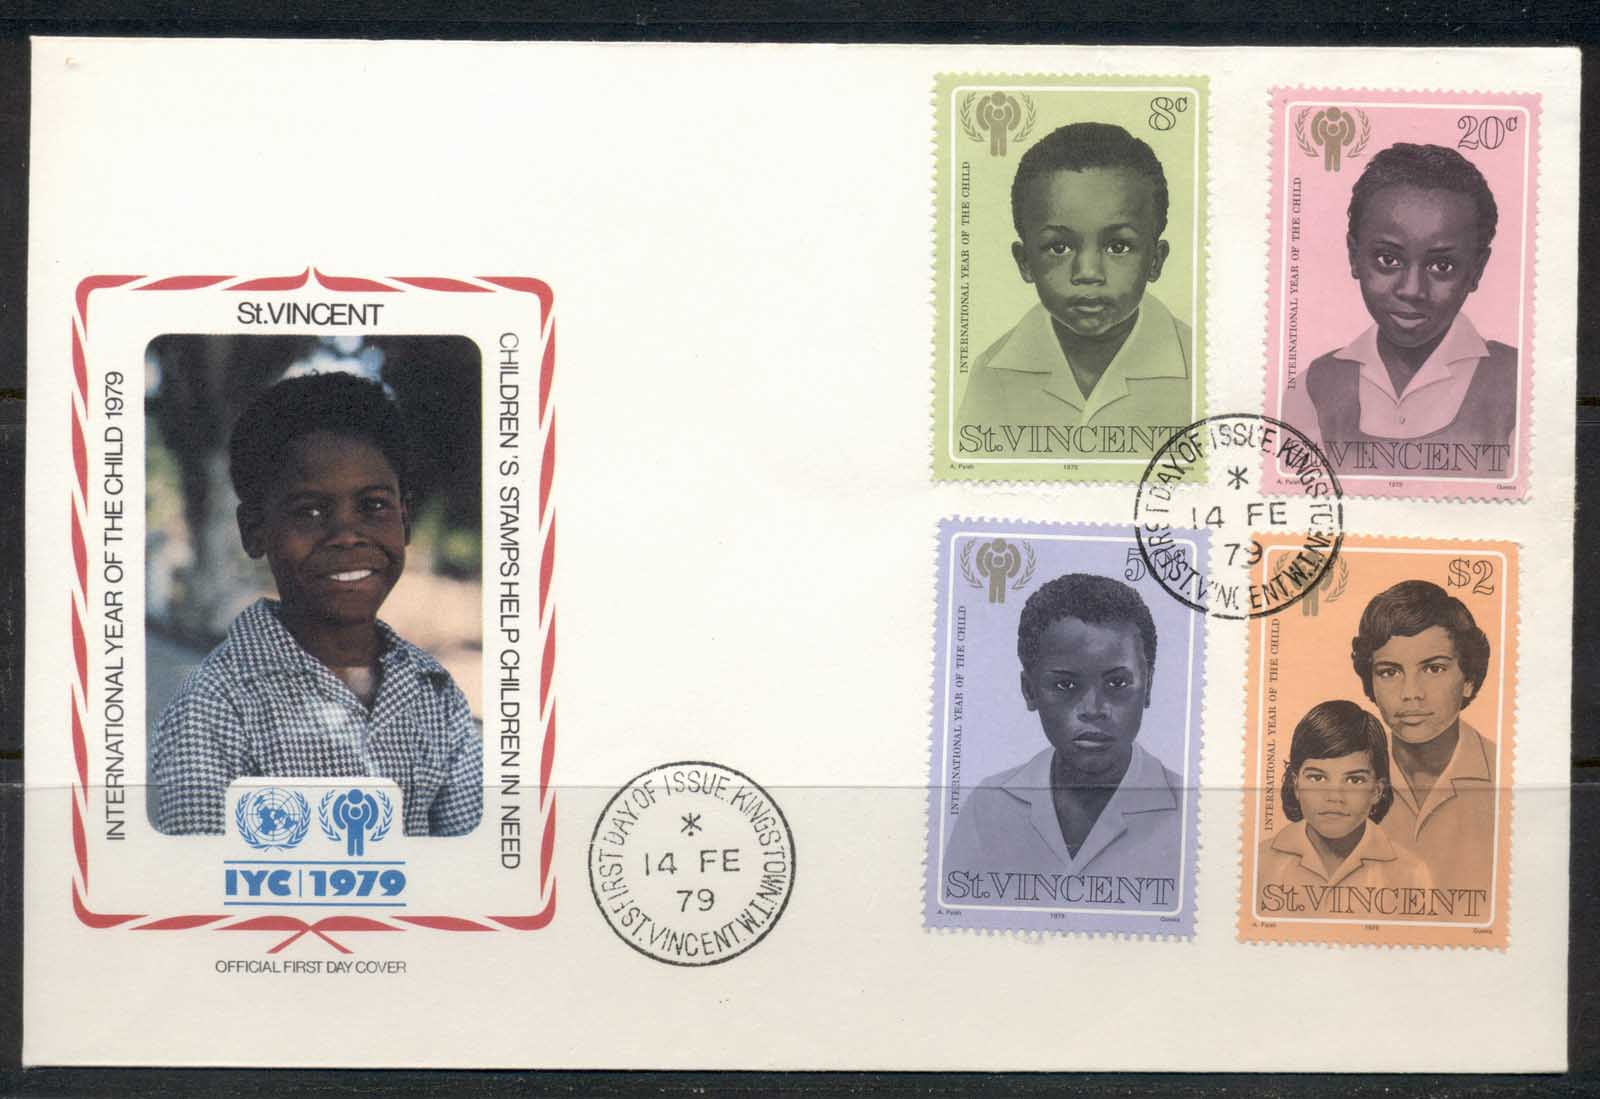 St Vincent 1979 IYC International year of the Child FDC